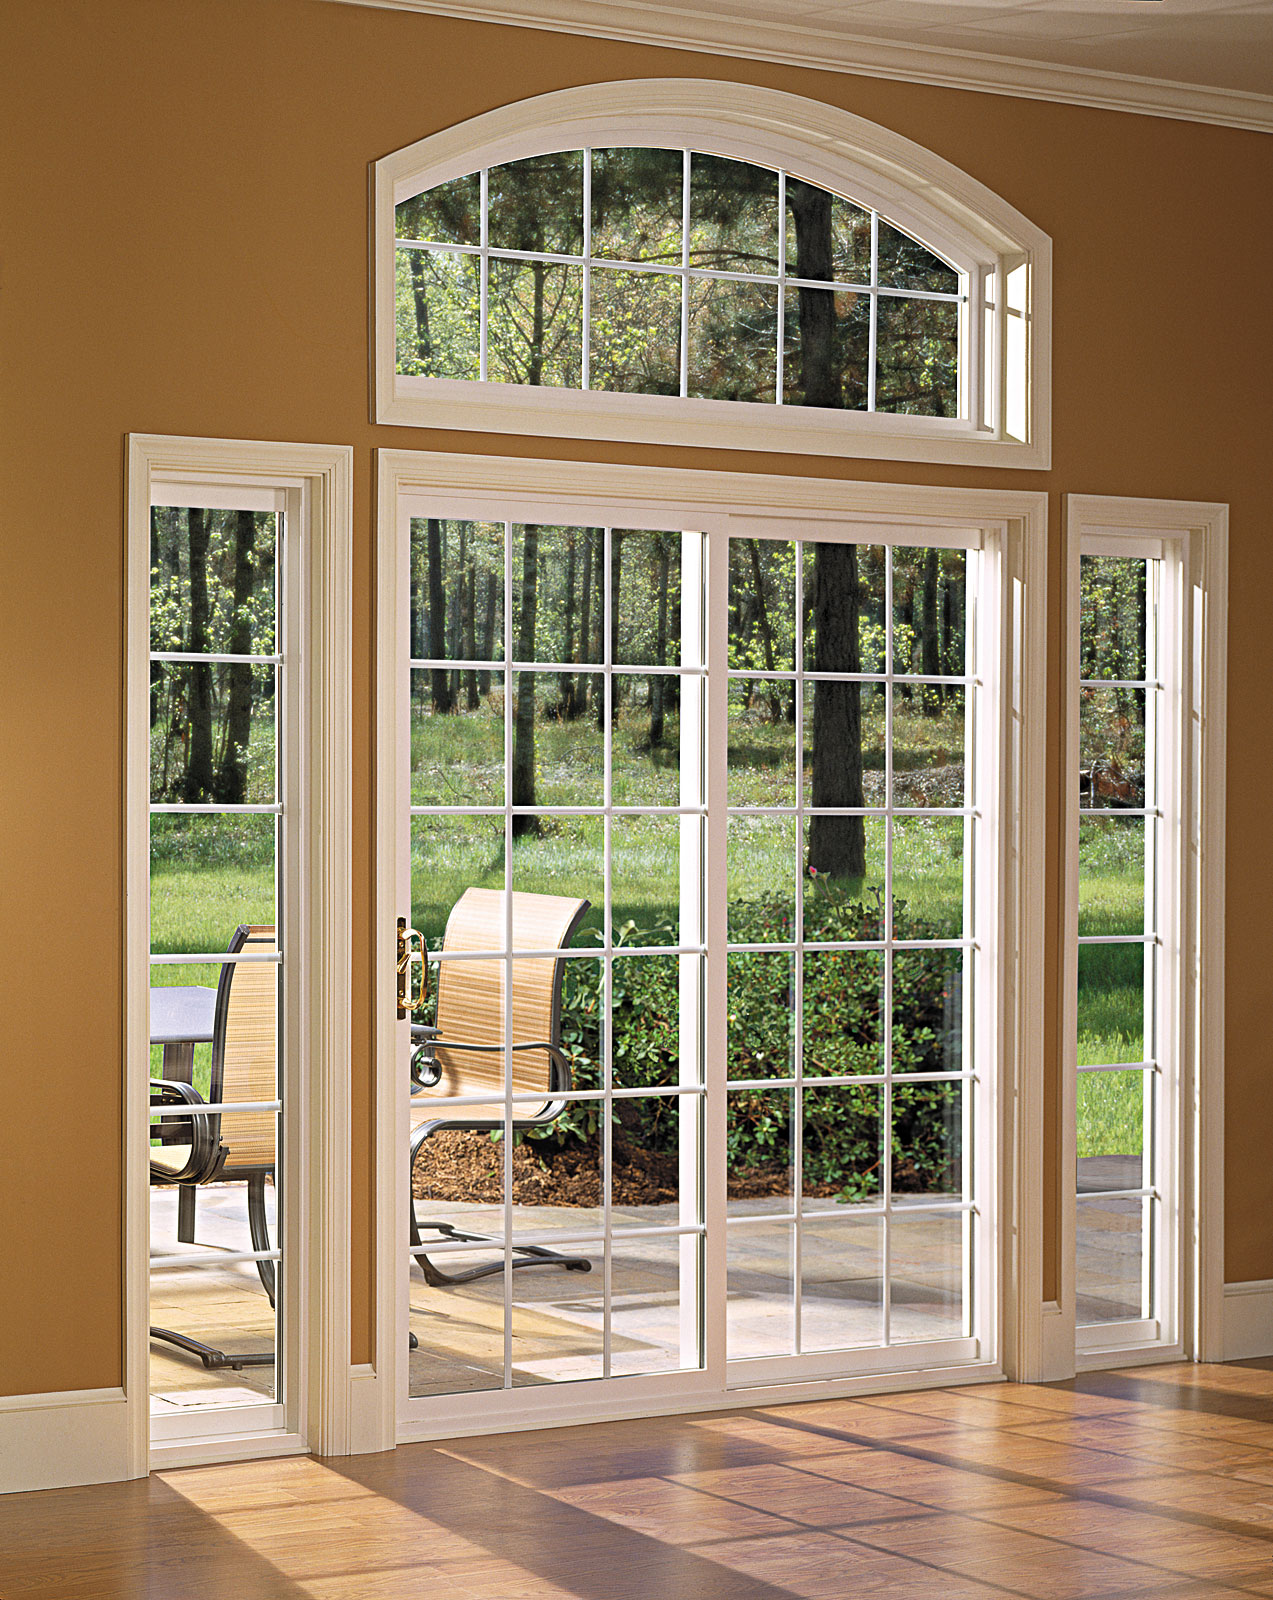 Windows and Door Replacement & Windows and Door Replacement \u2013 Long Island Building Experts Pezcame.Com